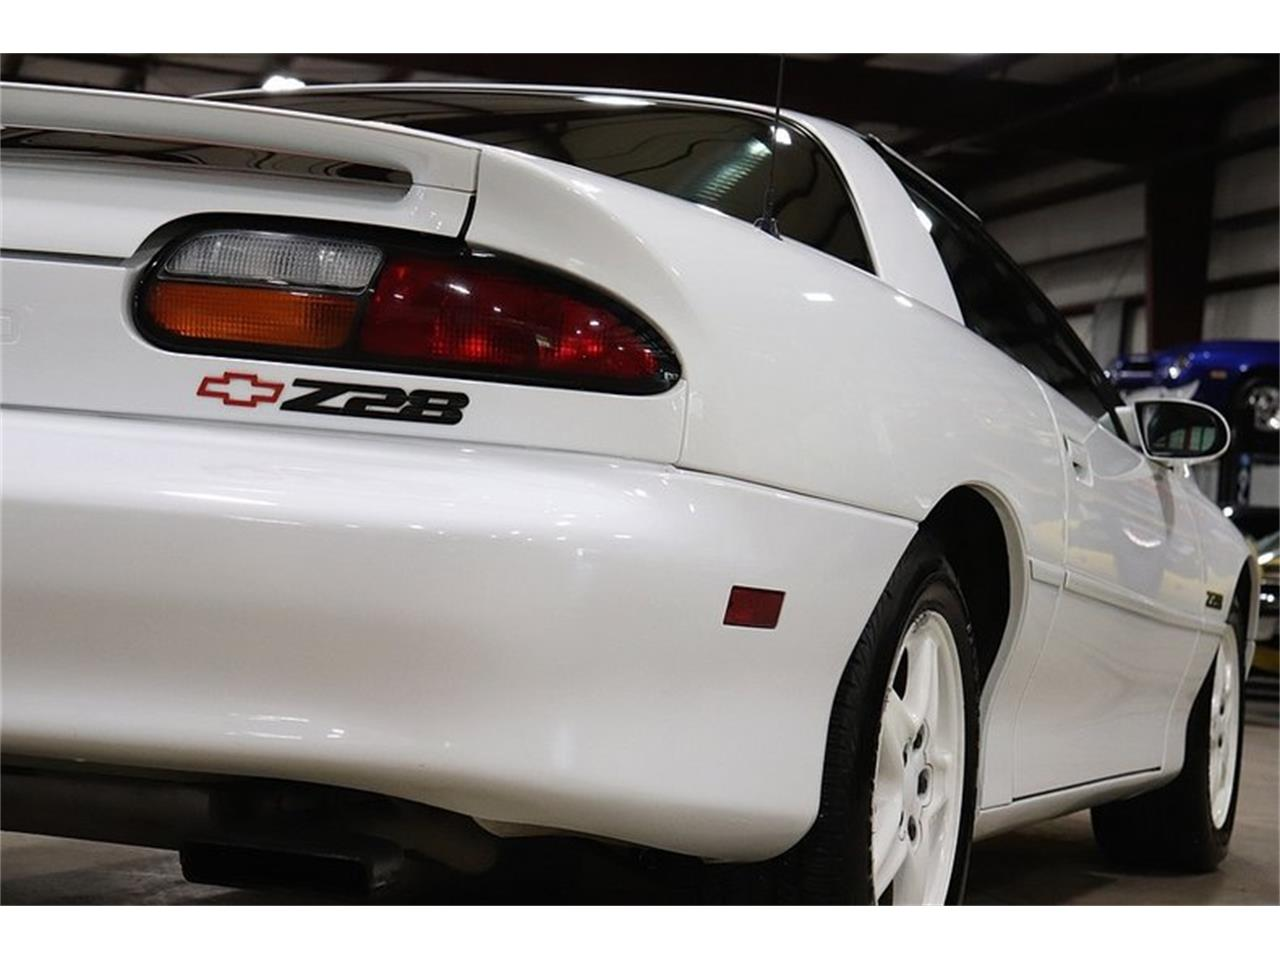 1997 Chevrolet Camaro Z28 for sale in Kentwood, MI – photo 37